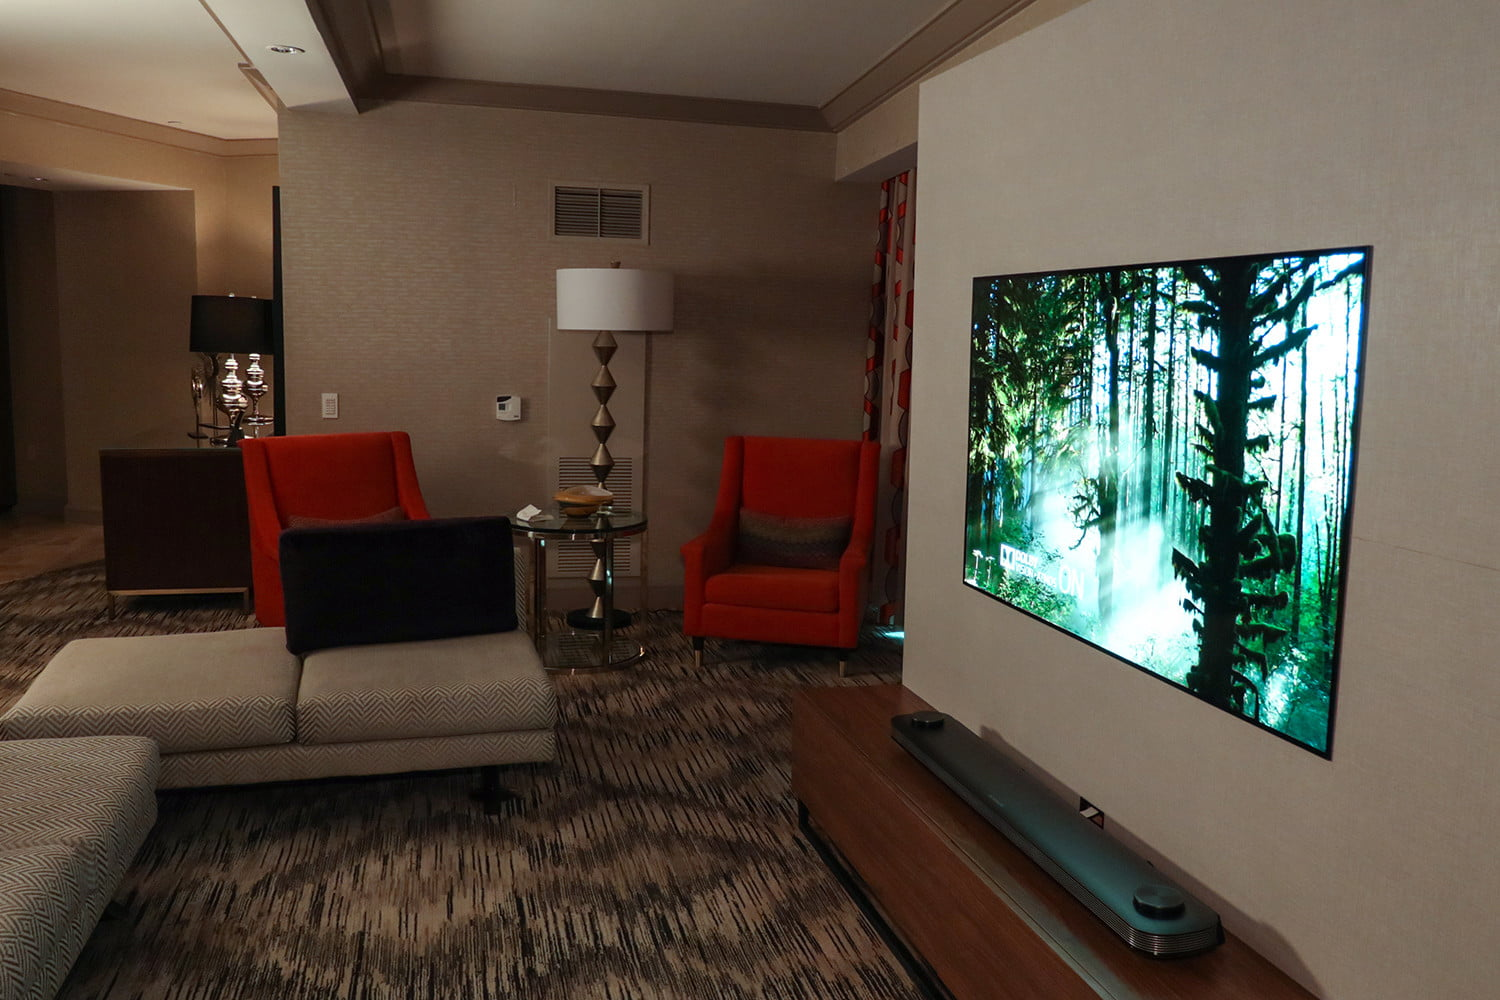 4k Tv Guide Everything You Need To Know Digital Trends